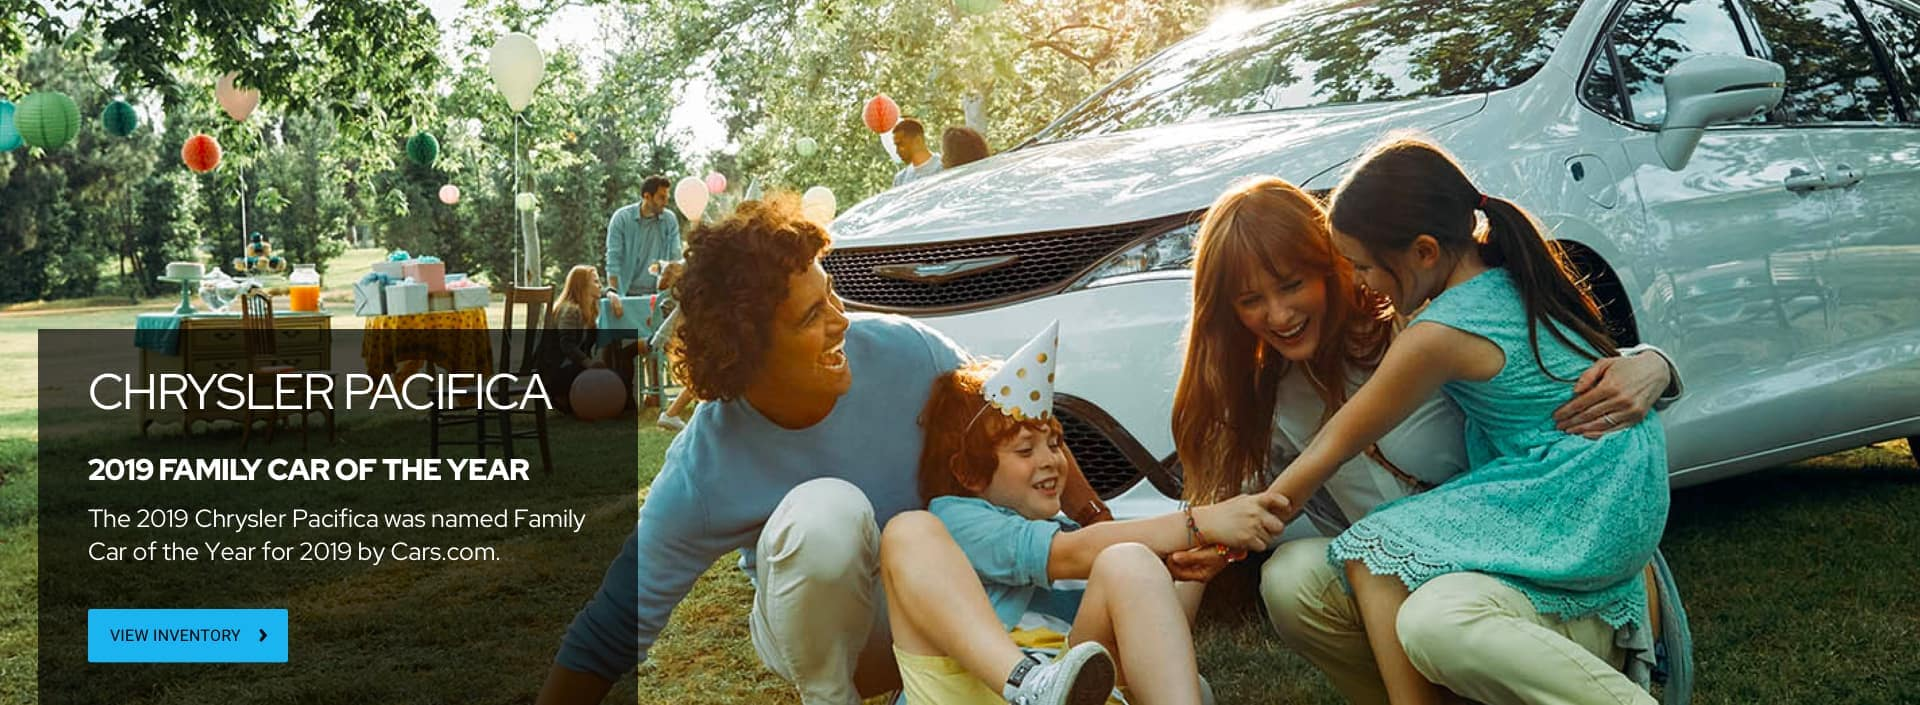 Family in front of their Chrysler Pacifica